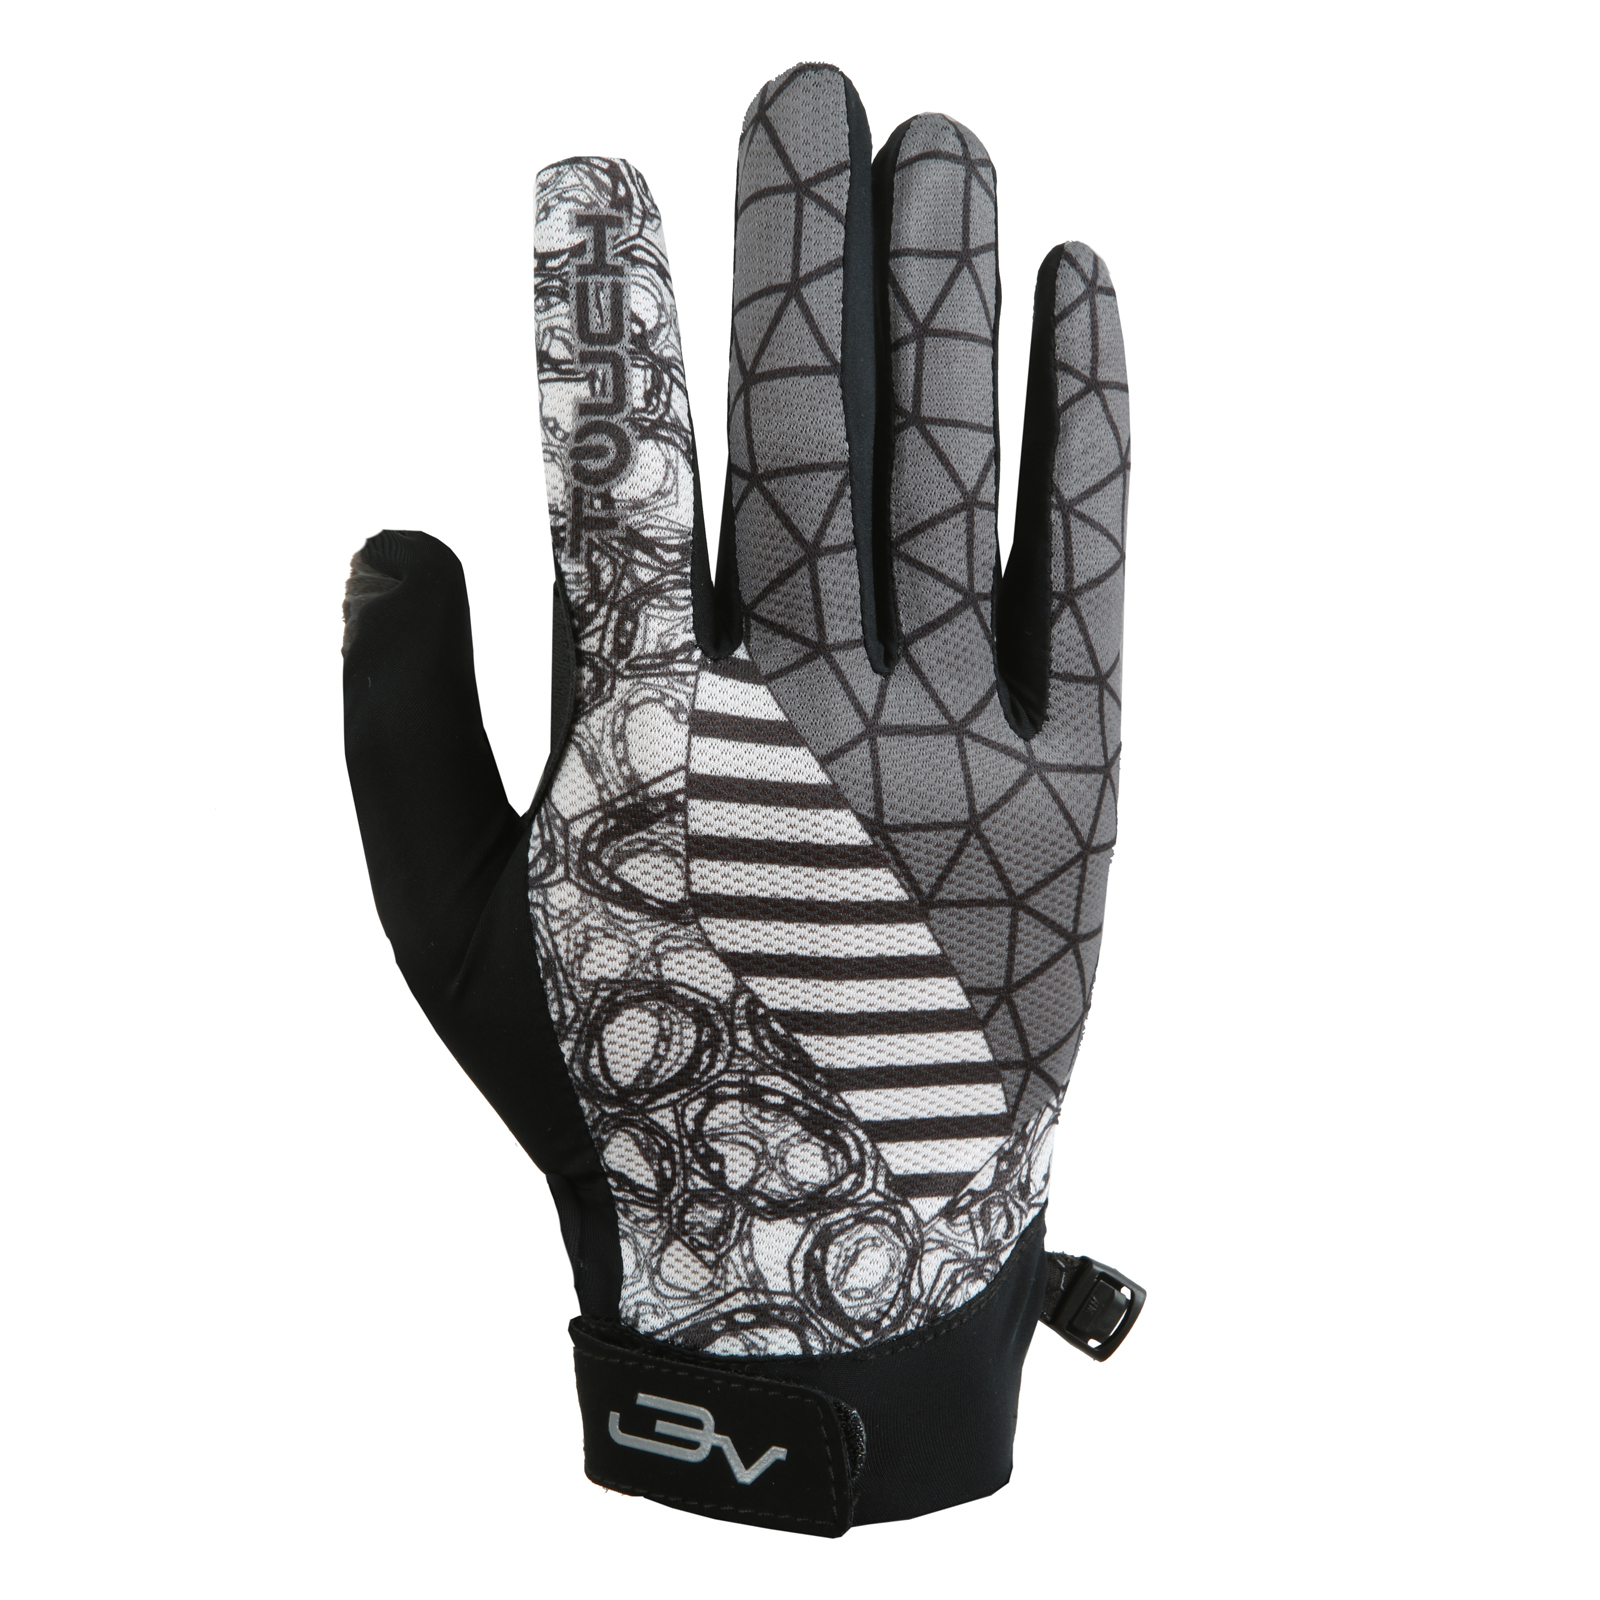 Nike Gloves Touch Screen: Touch Screen Cycling Gloves Blue